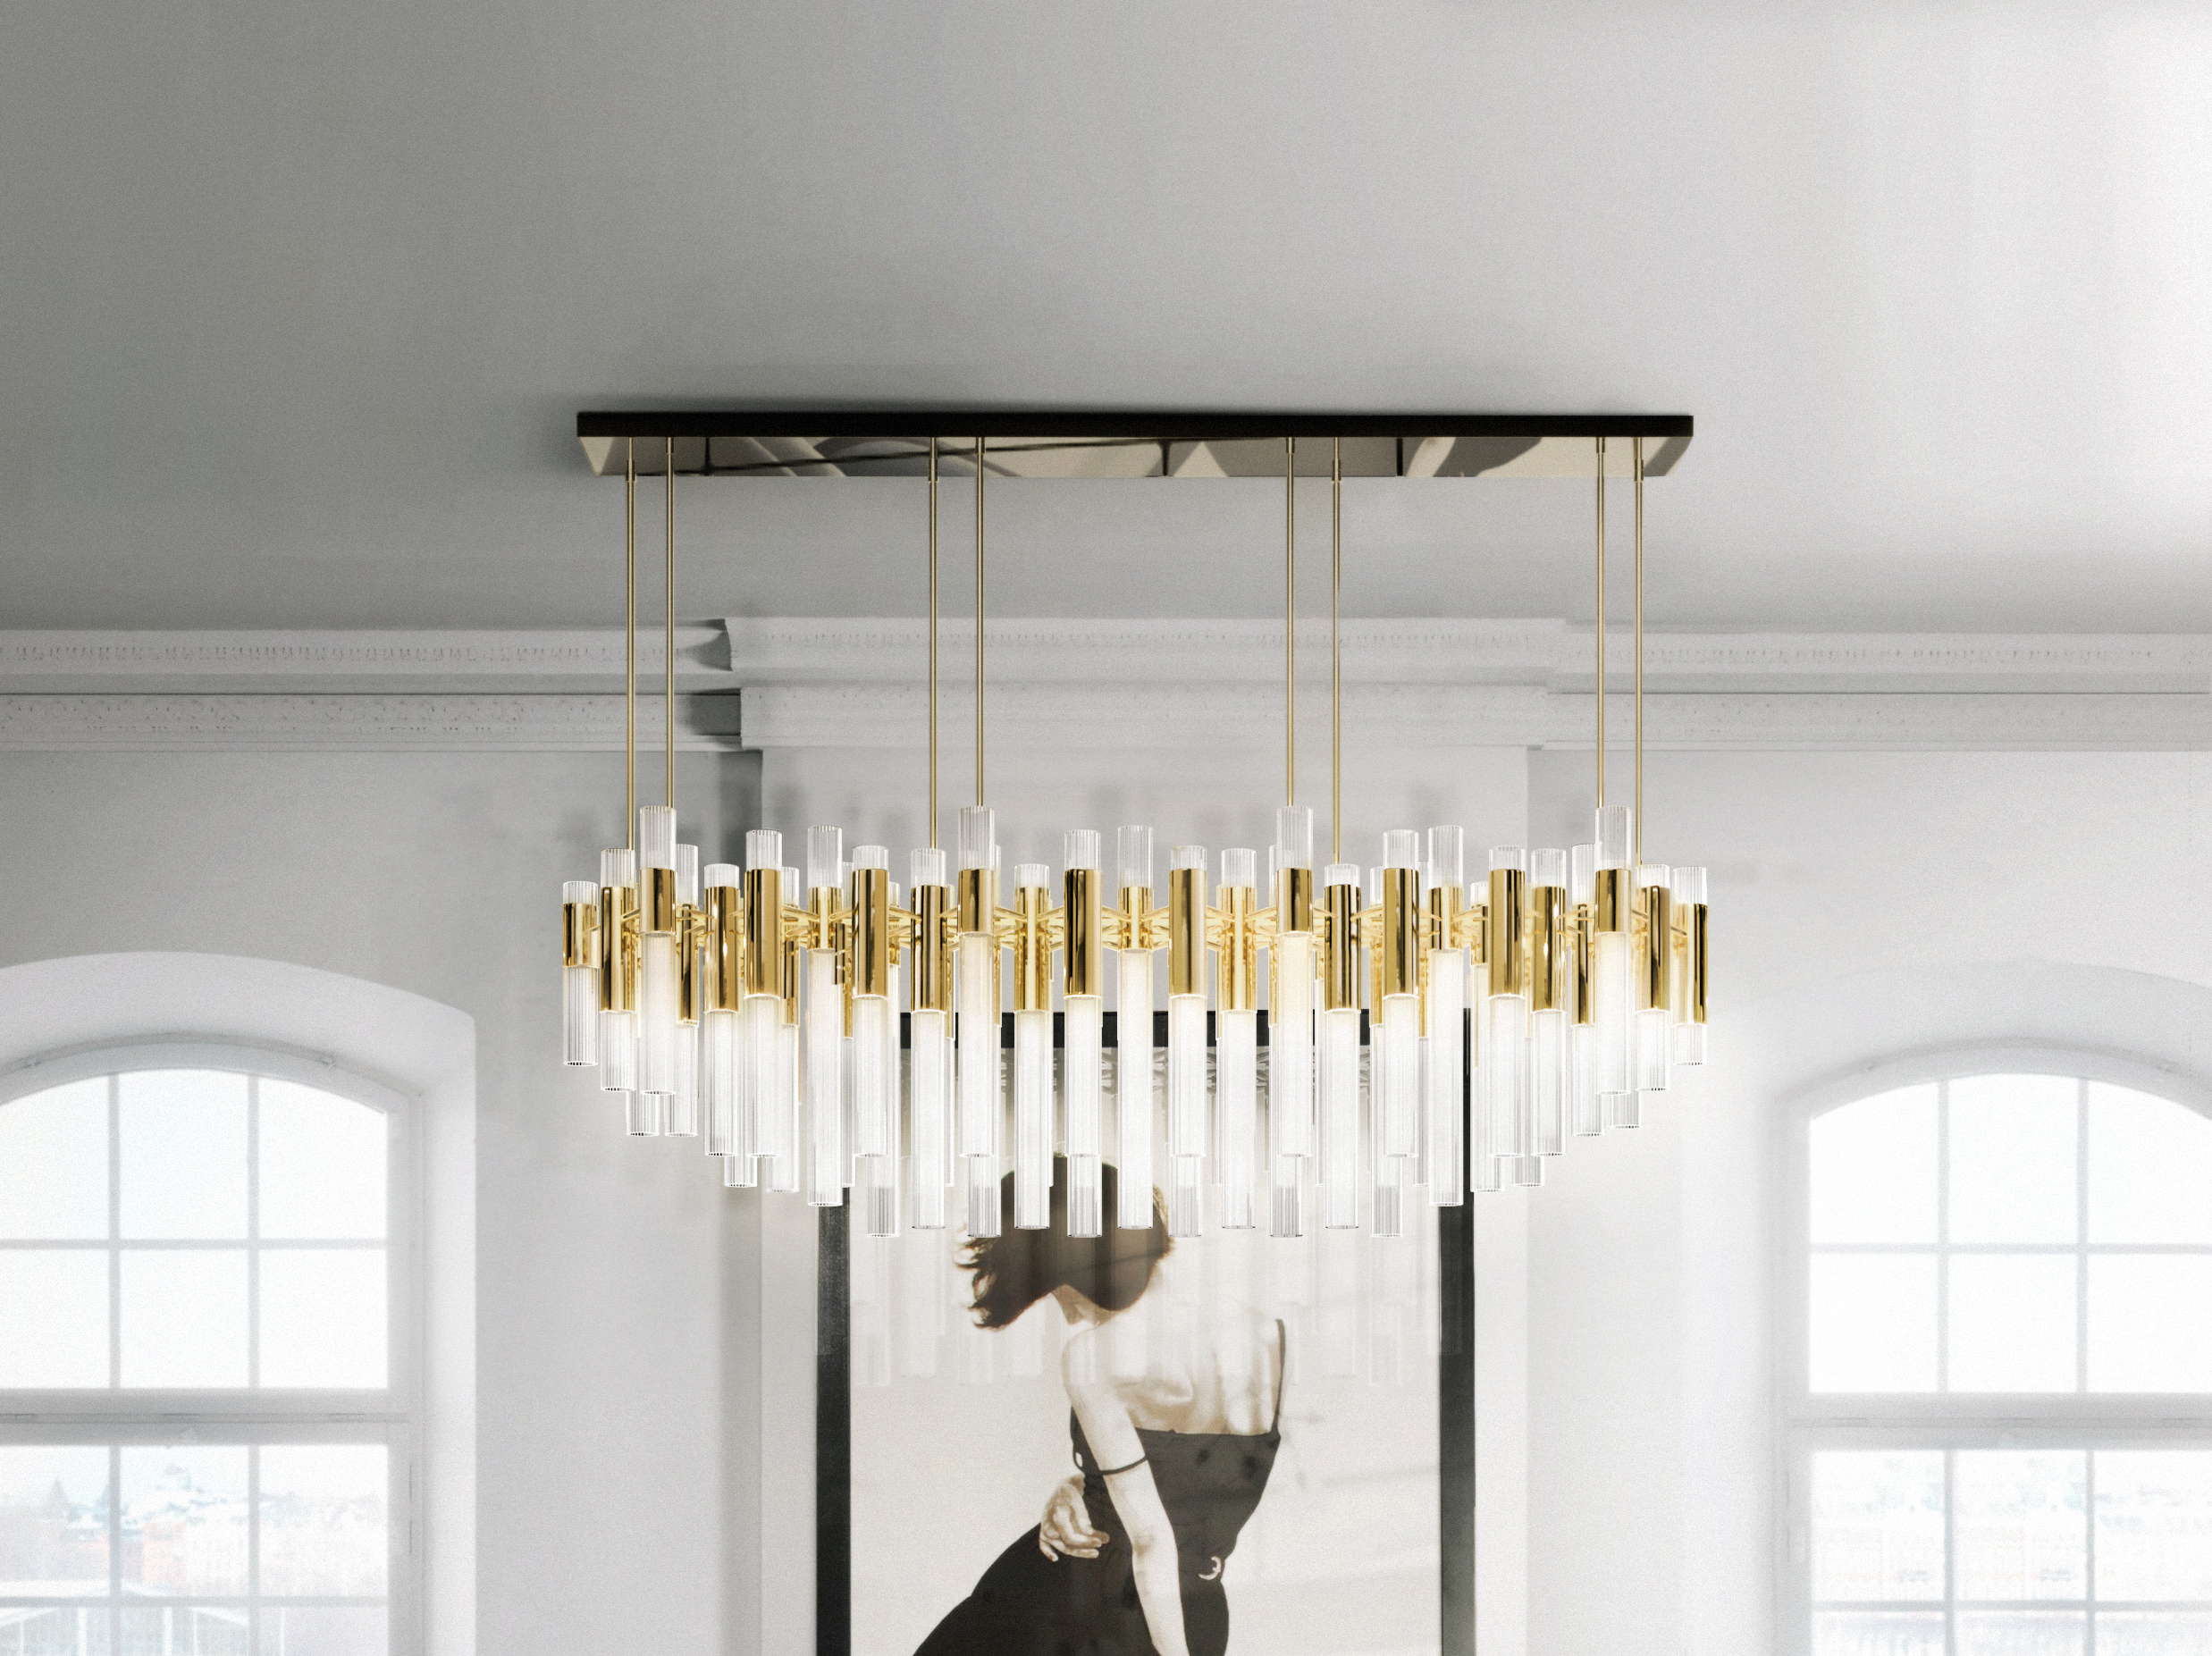 Luxury Chandeliers: Luxxu's selection for splendor in any scenario kelly hoppen Top Interior Designer: the work of Kelly Hoppen Waterfall Chandelier Feature kelly hoppen Top Interior Designer: the work of Kelly Hoppen Waterfall Chandelier Feature